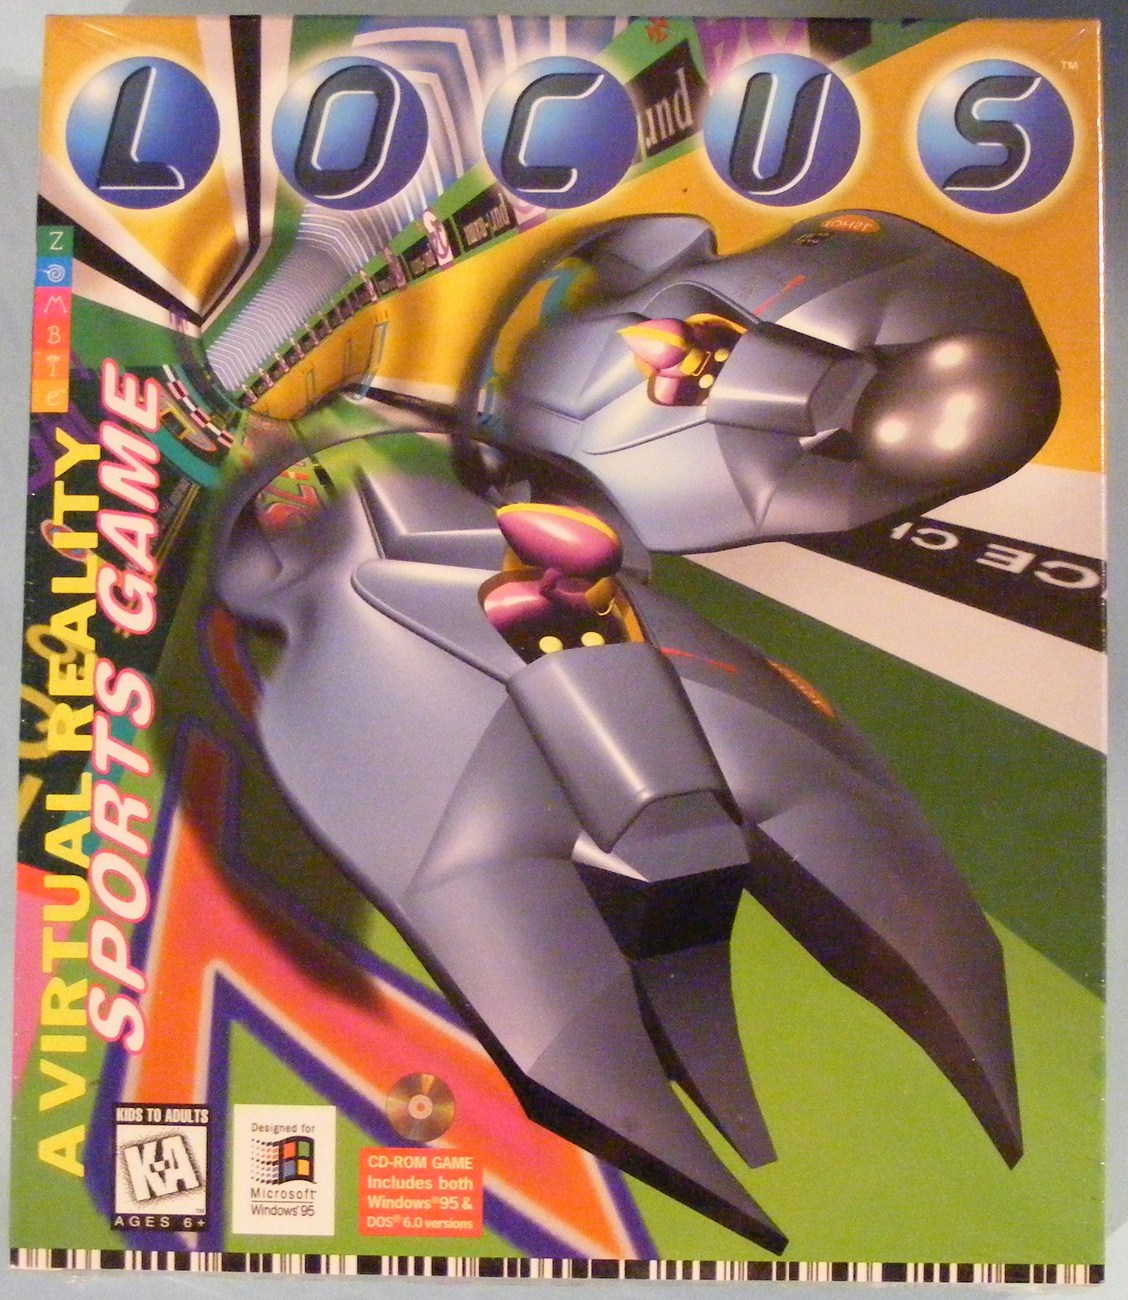 Primary image for 1995 Locus Virtual Reality PC Game